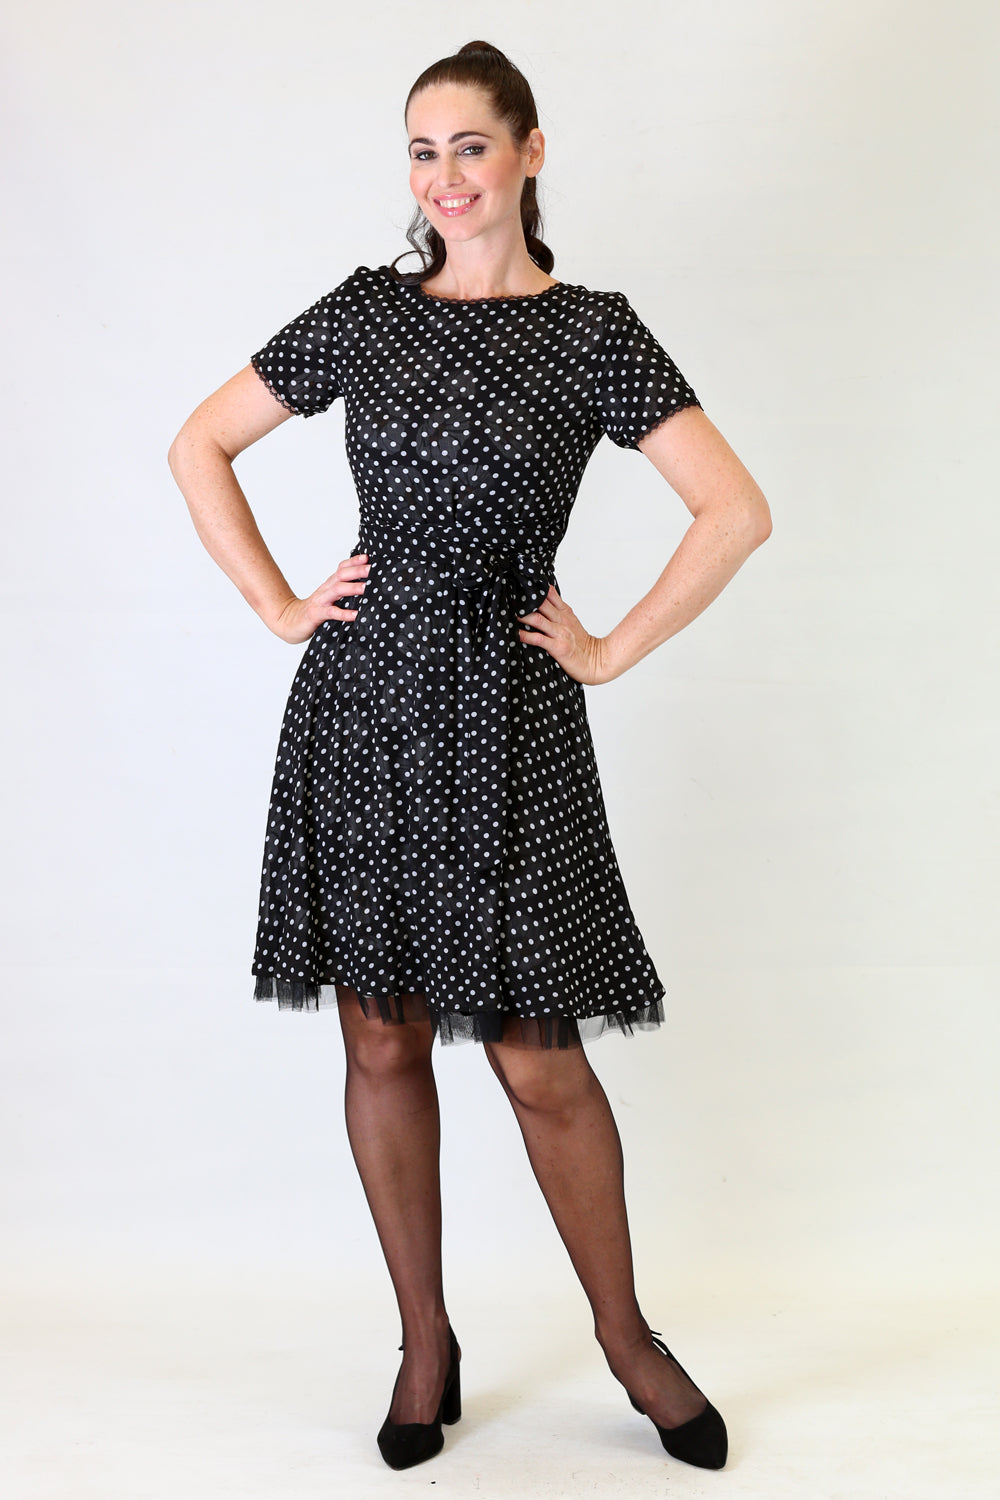 Mona FlipIt Wrap Dress - LAST ONE